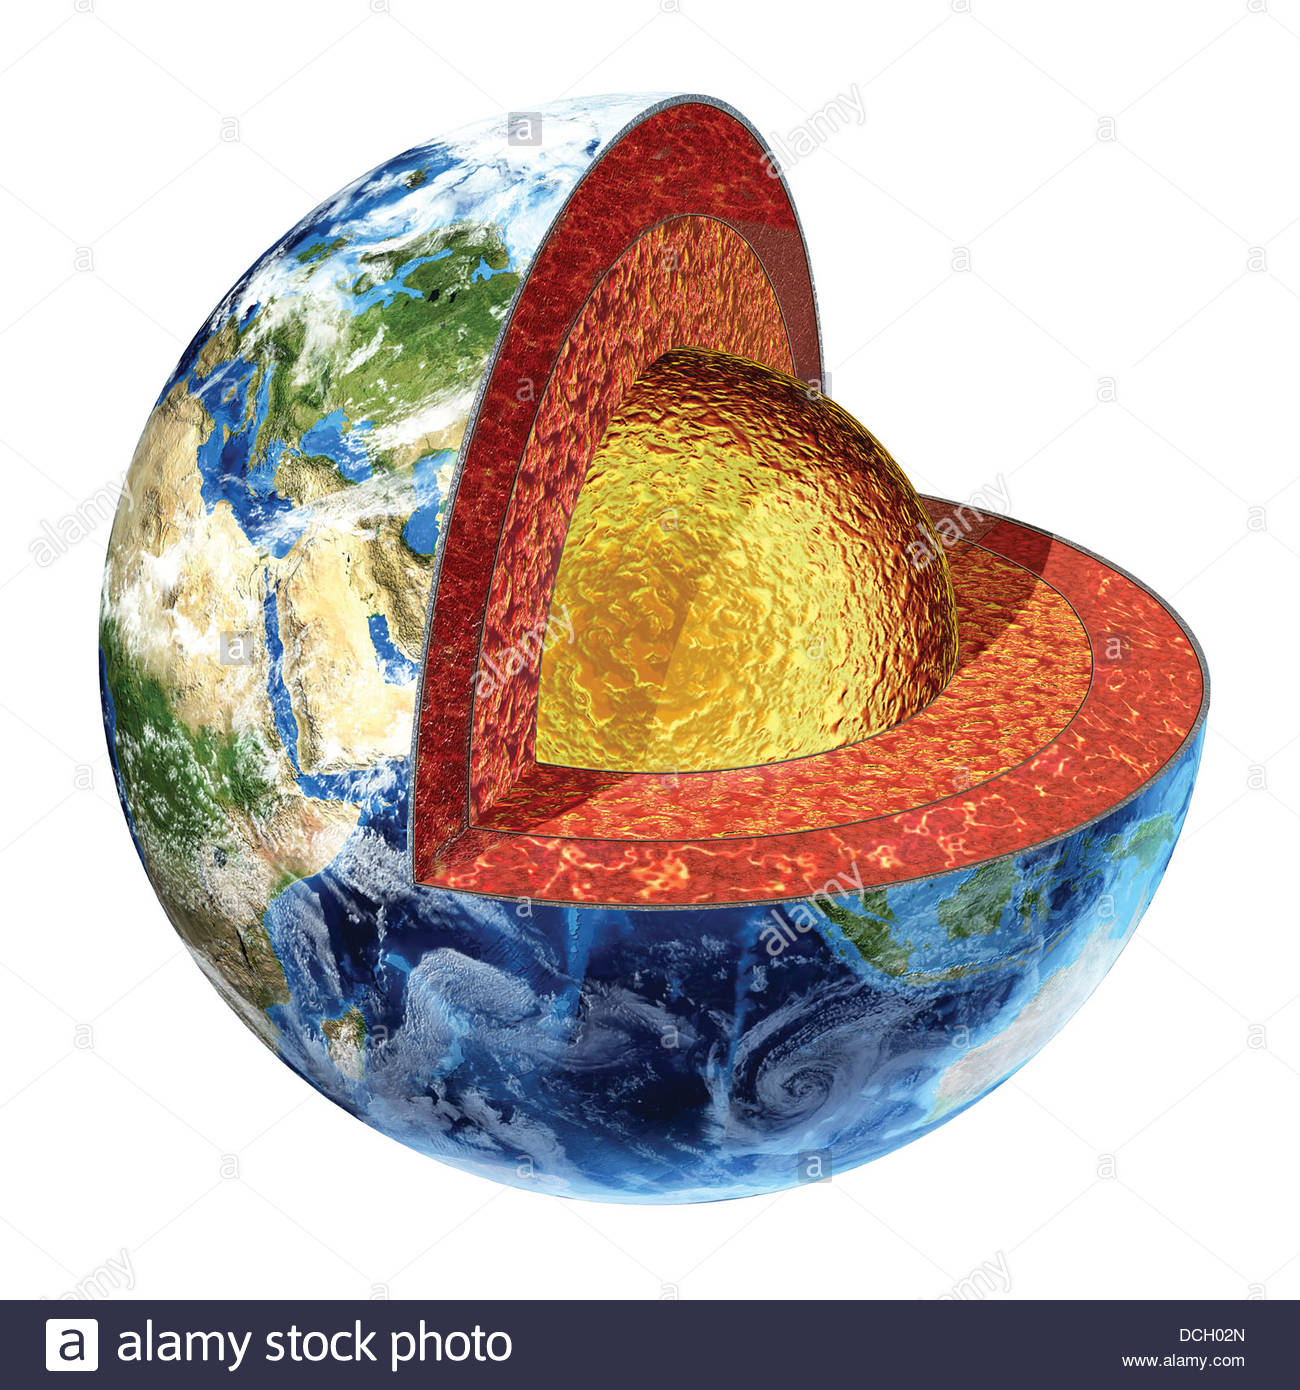 Cross Section Of Planet Earth Showing The Outer Core Made